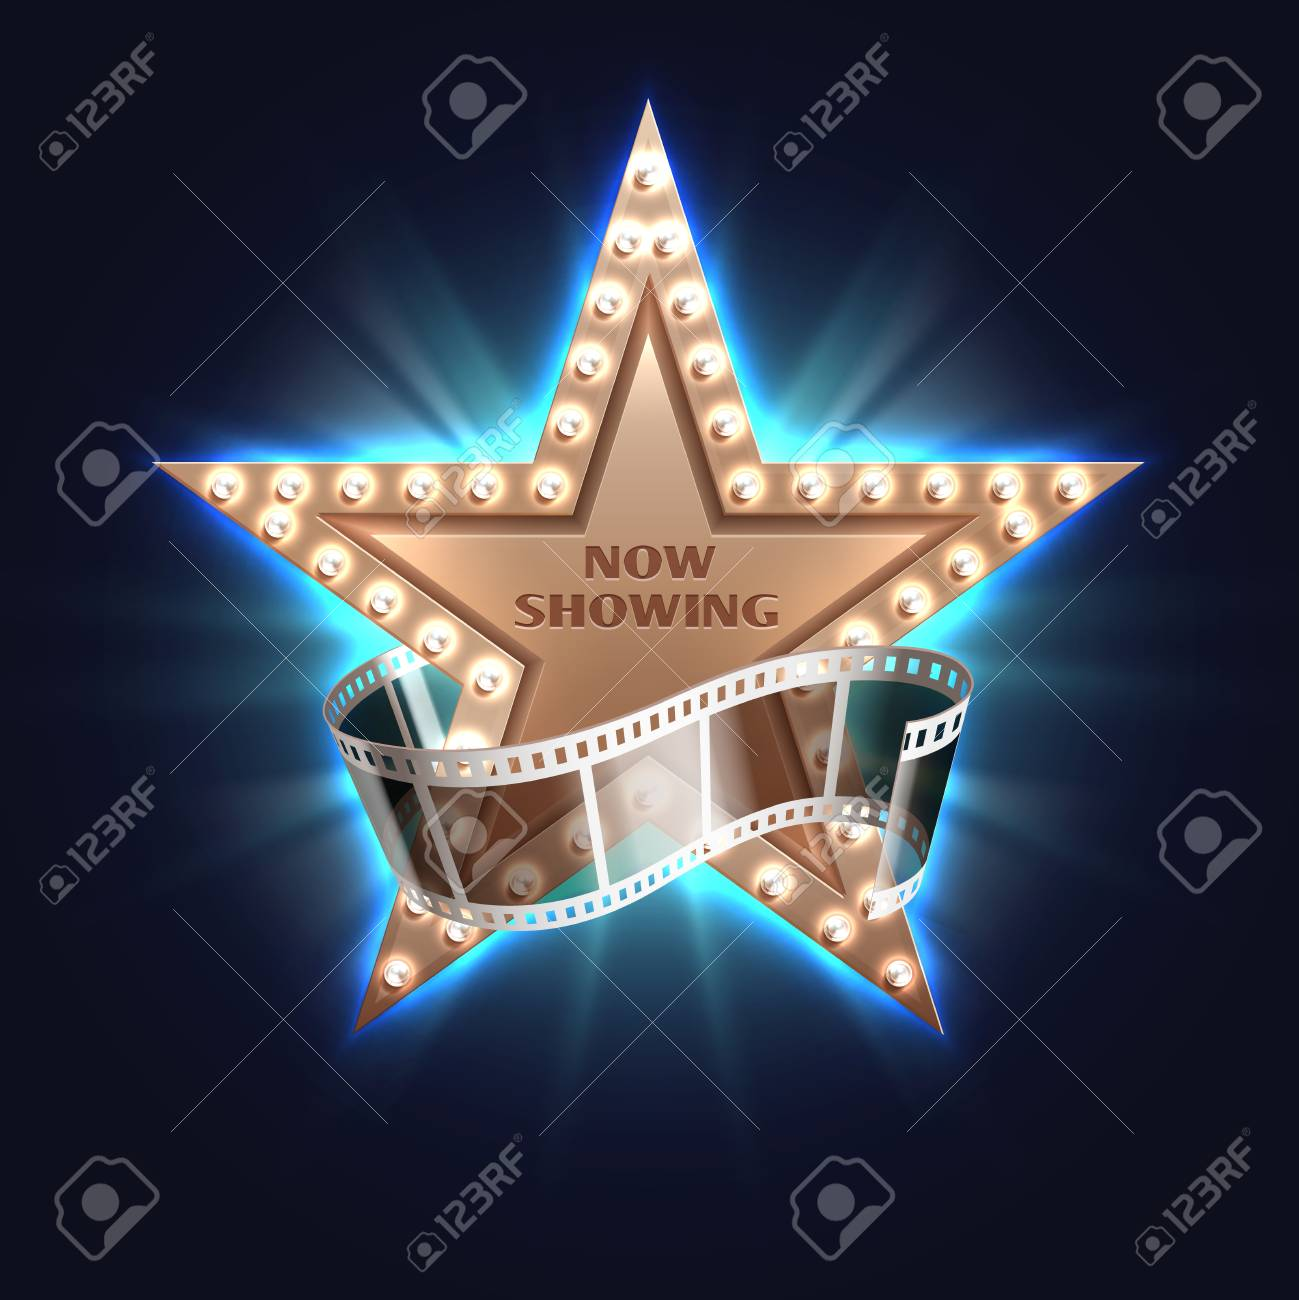 Now Showing Movie Vector Background With Film And Bright Star